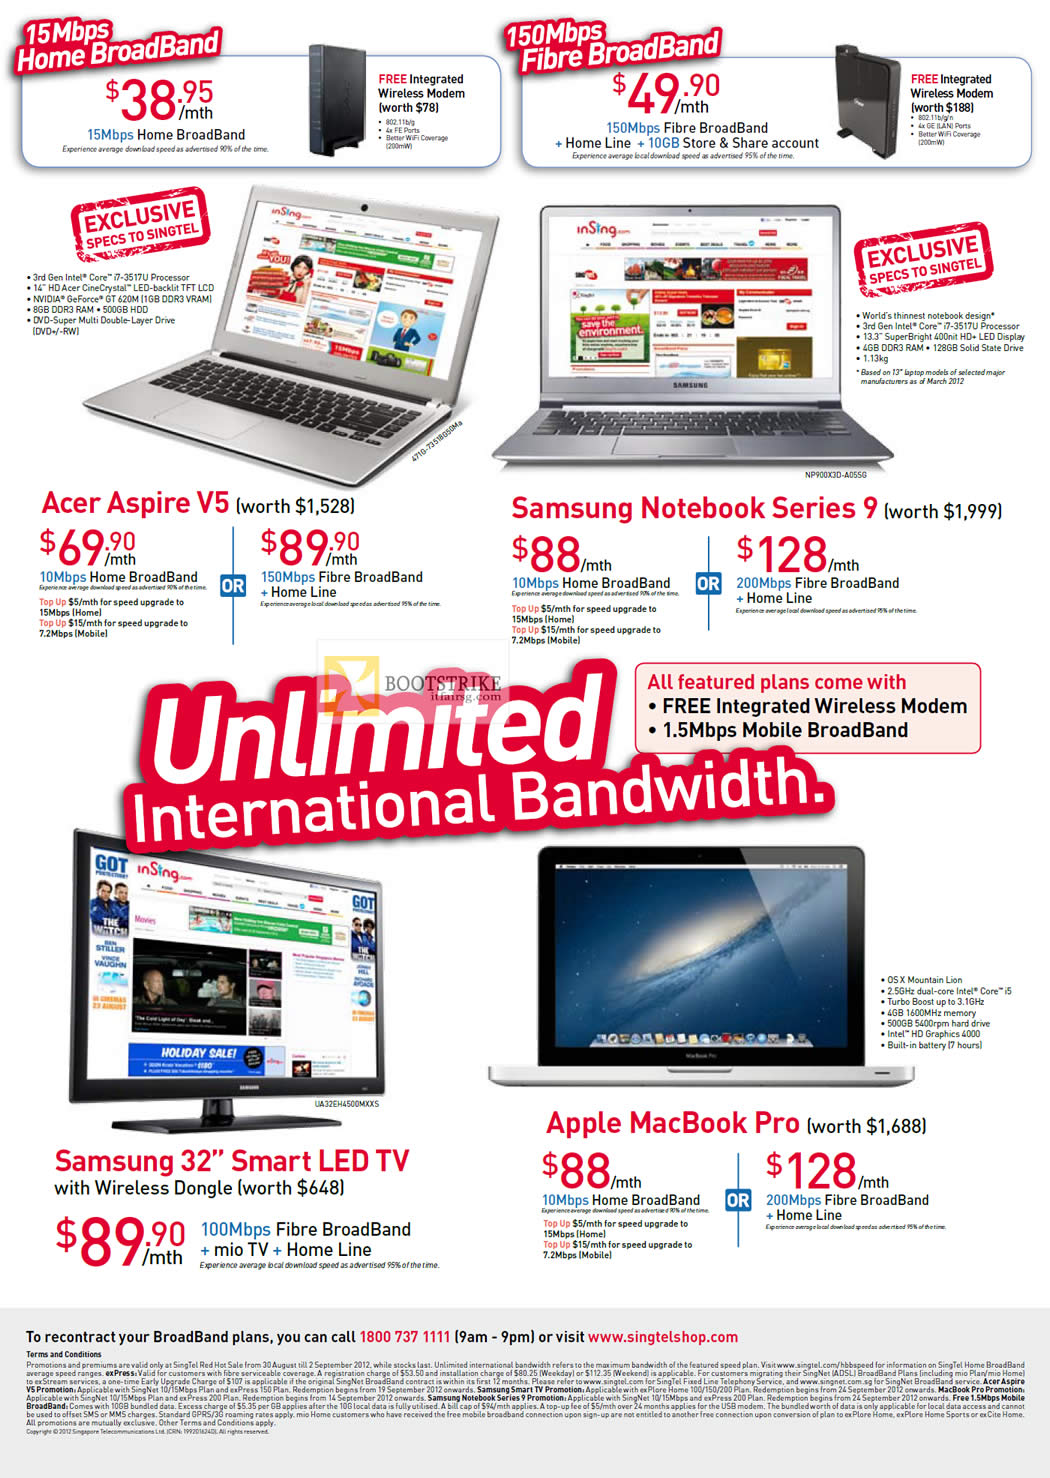 COMEX 2012 price list image brochure of Singtel Broadband ADSL 15Mbps Free Acer Aspire V5, Samsung Notebook Series 9, Samsung 32 Smart LED TV, Apple MacBook Pro, Mio TV